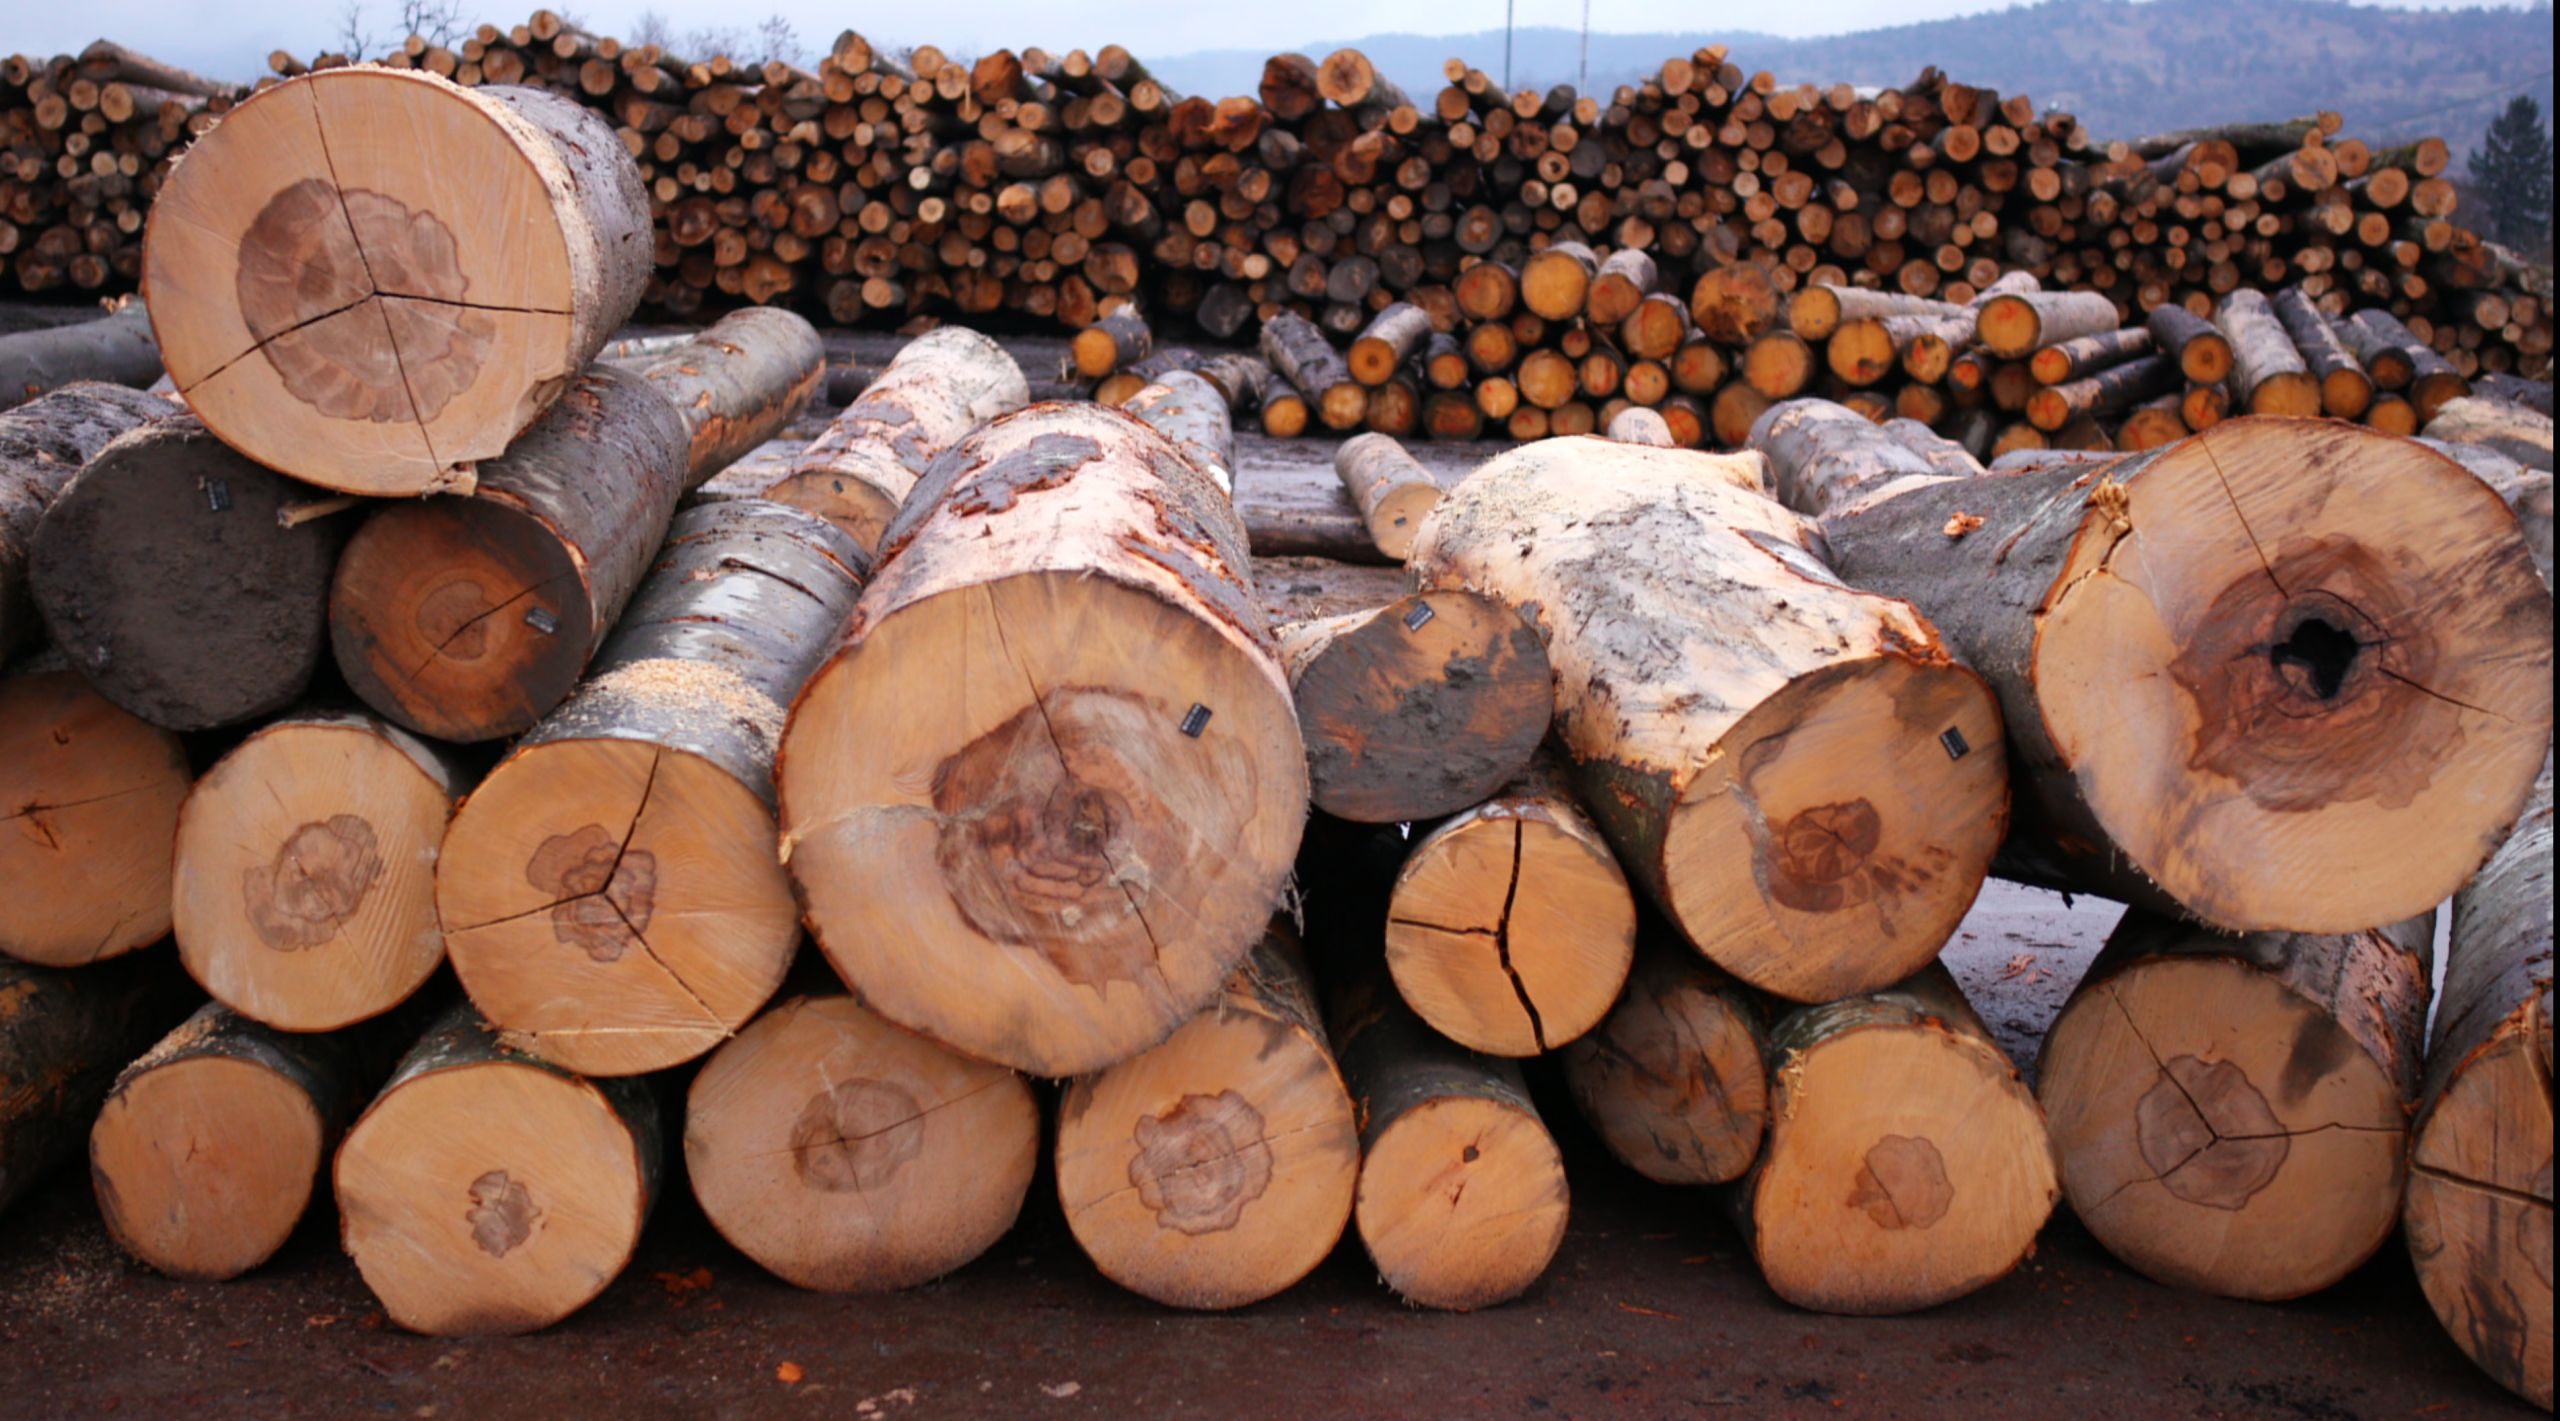 Logs waiting to be processed at VGSM © Jeremy Bristow